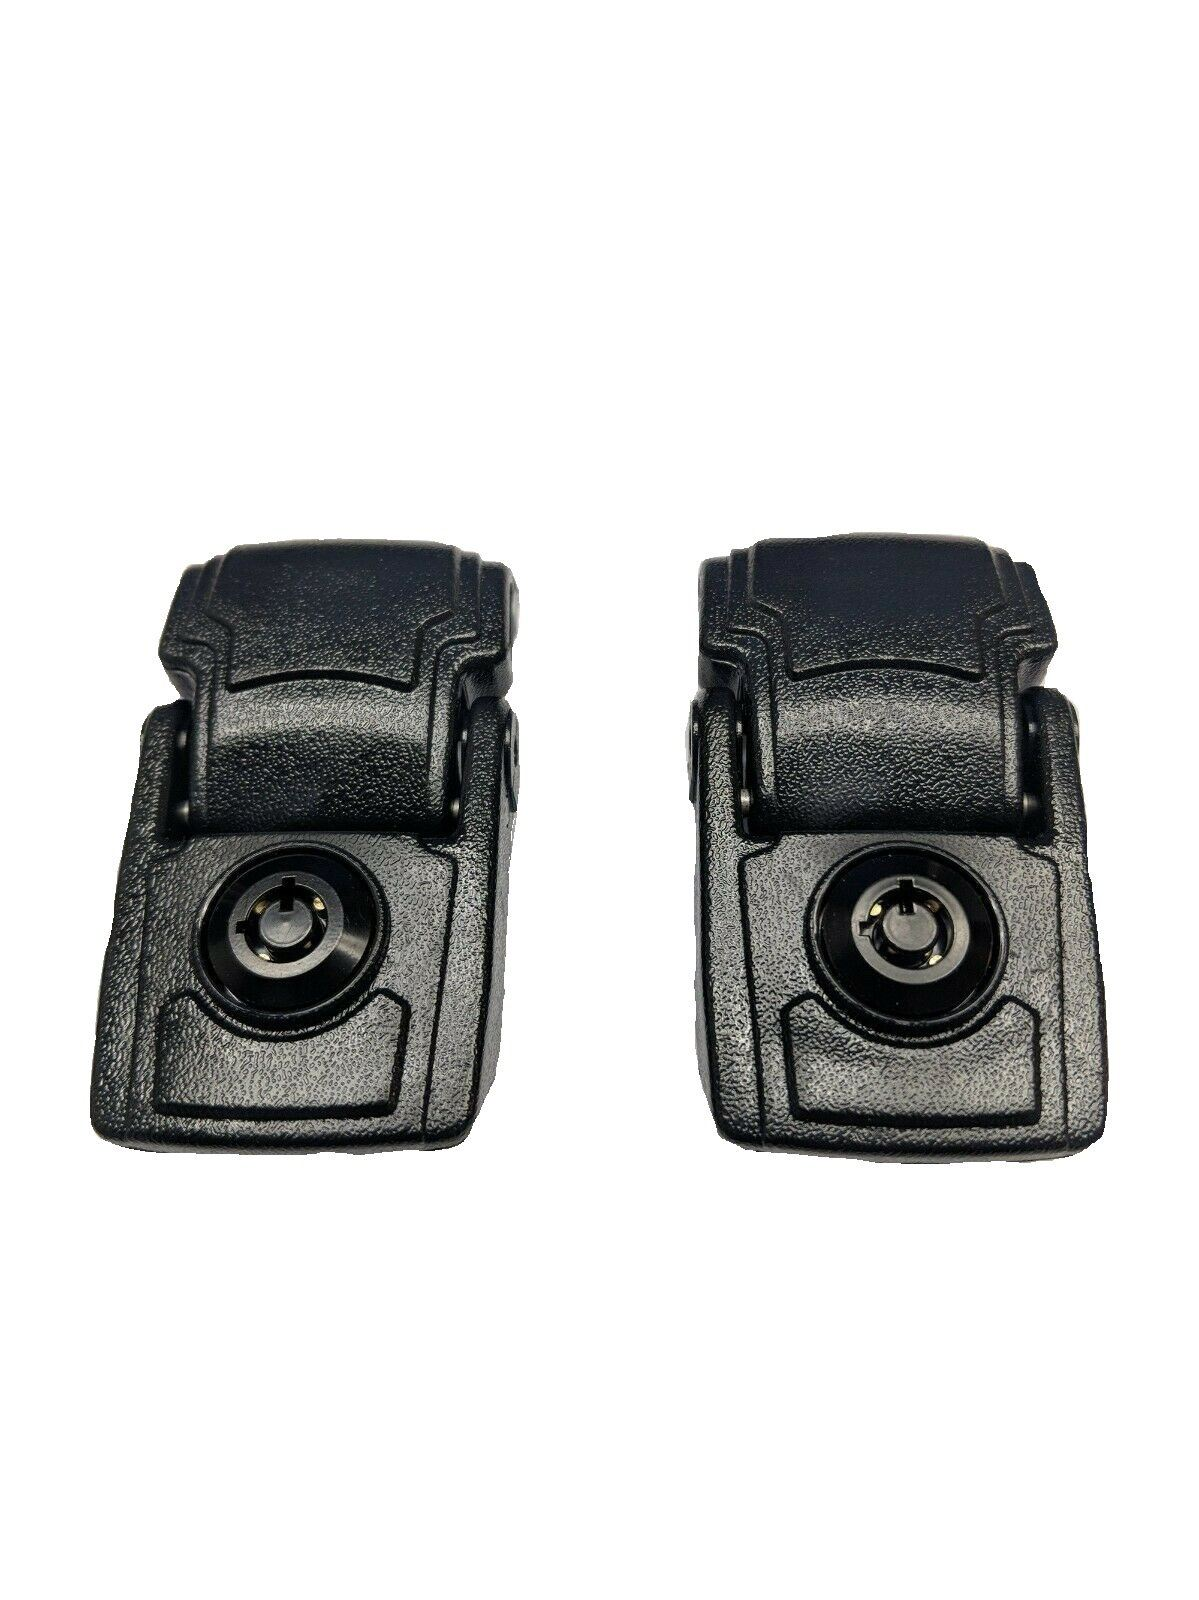 2 Black replacement latches for 1470 & 1490 cases. (with keys). - Pelican Color Case